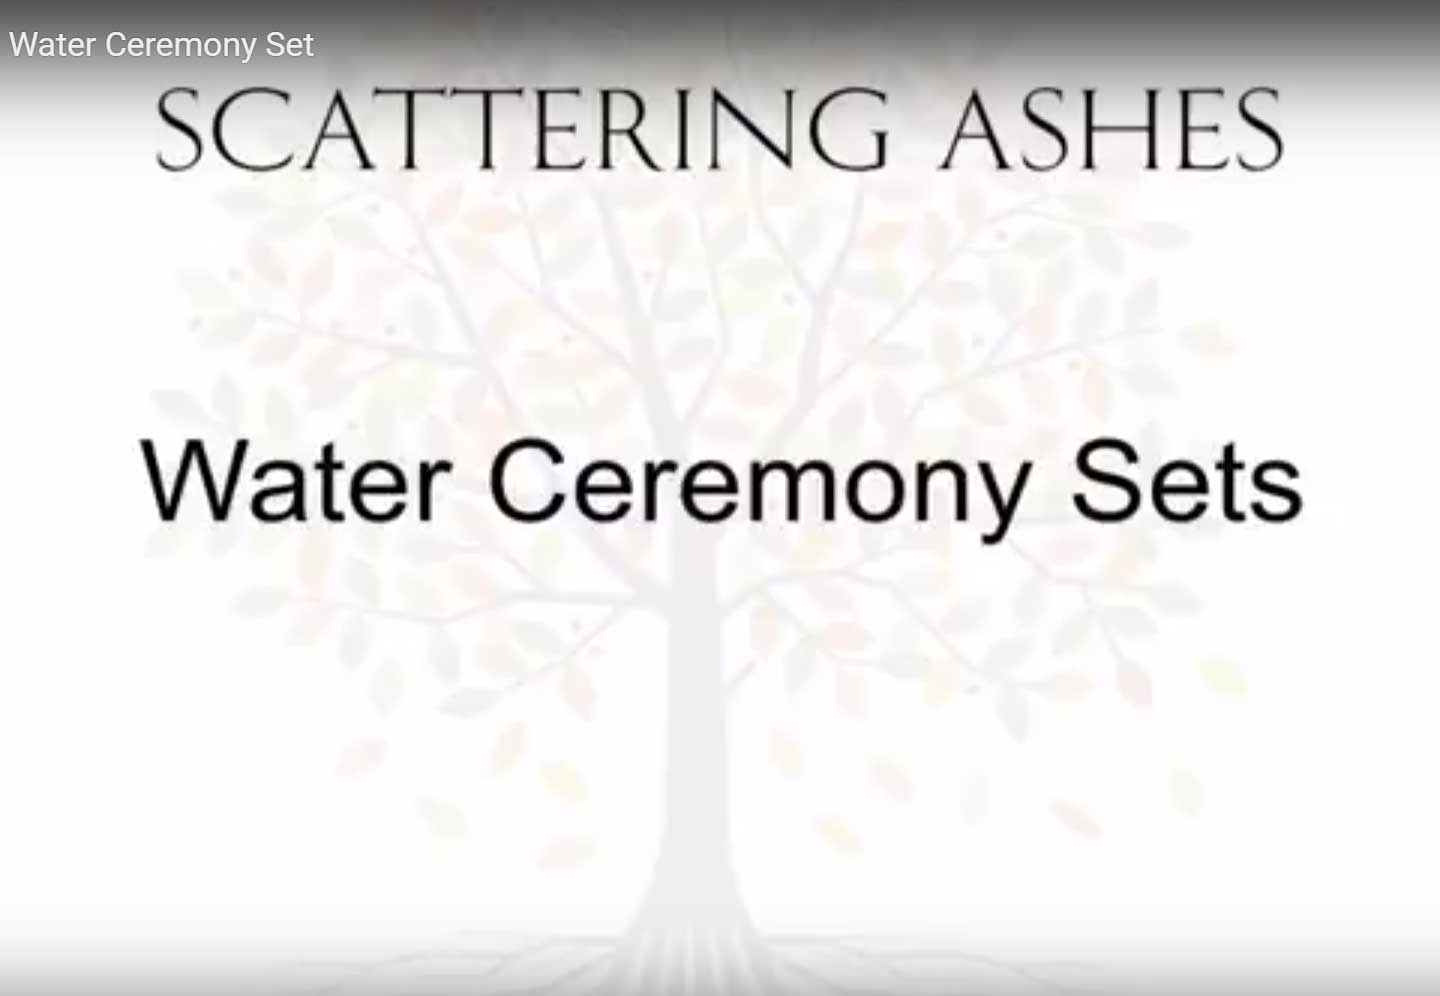 Water ceremony set